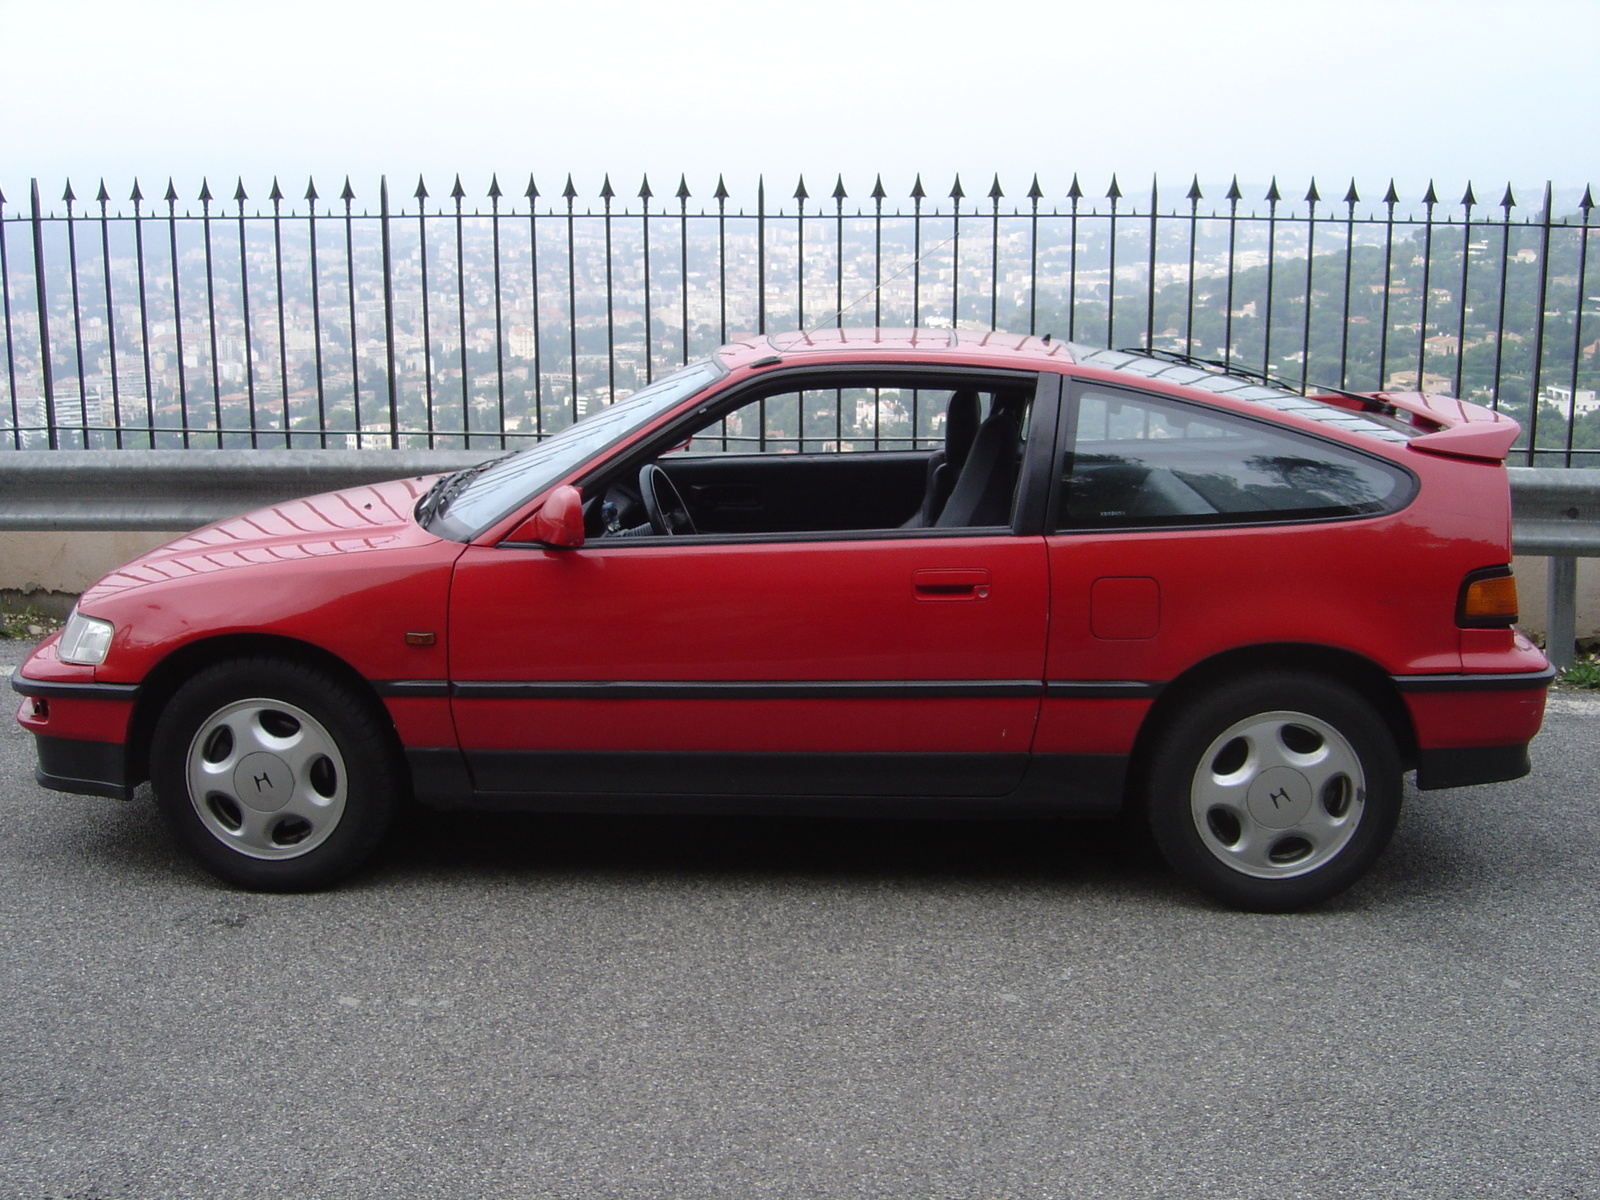 High Quality 1991 Honda Civic CRX #8 Honda Civic CRX #8